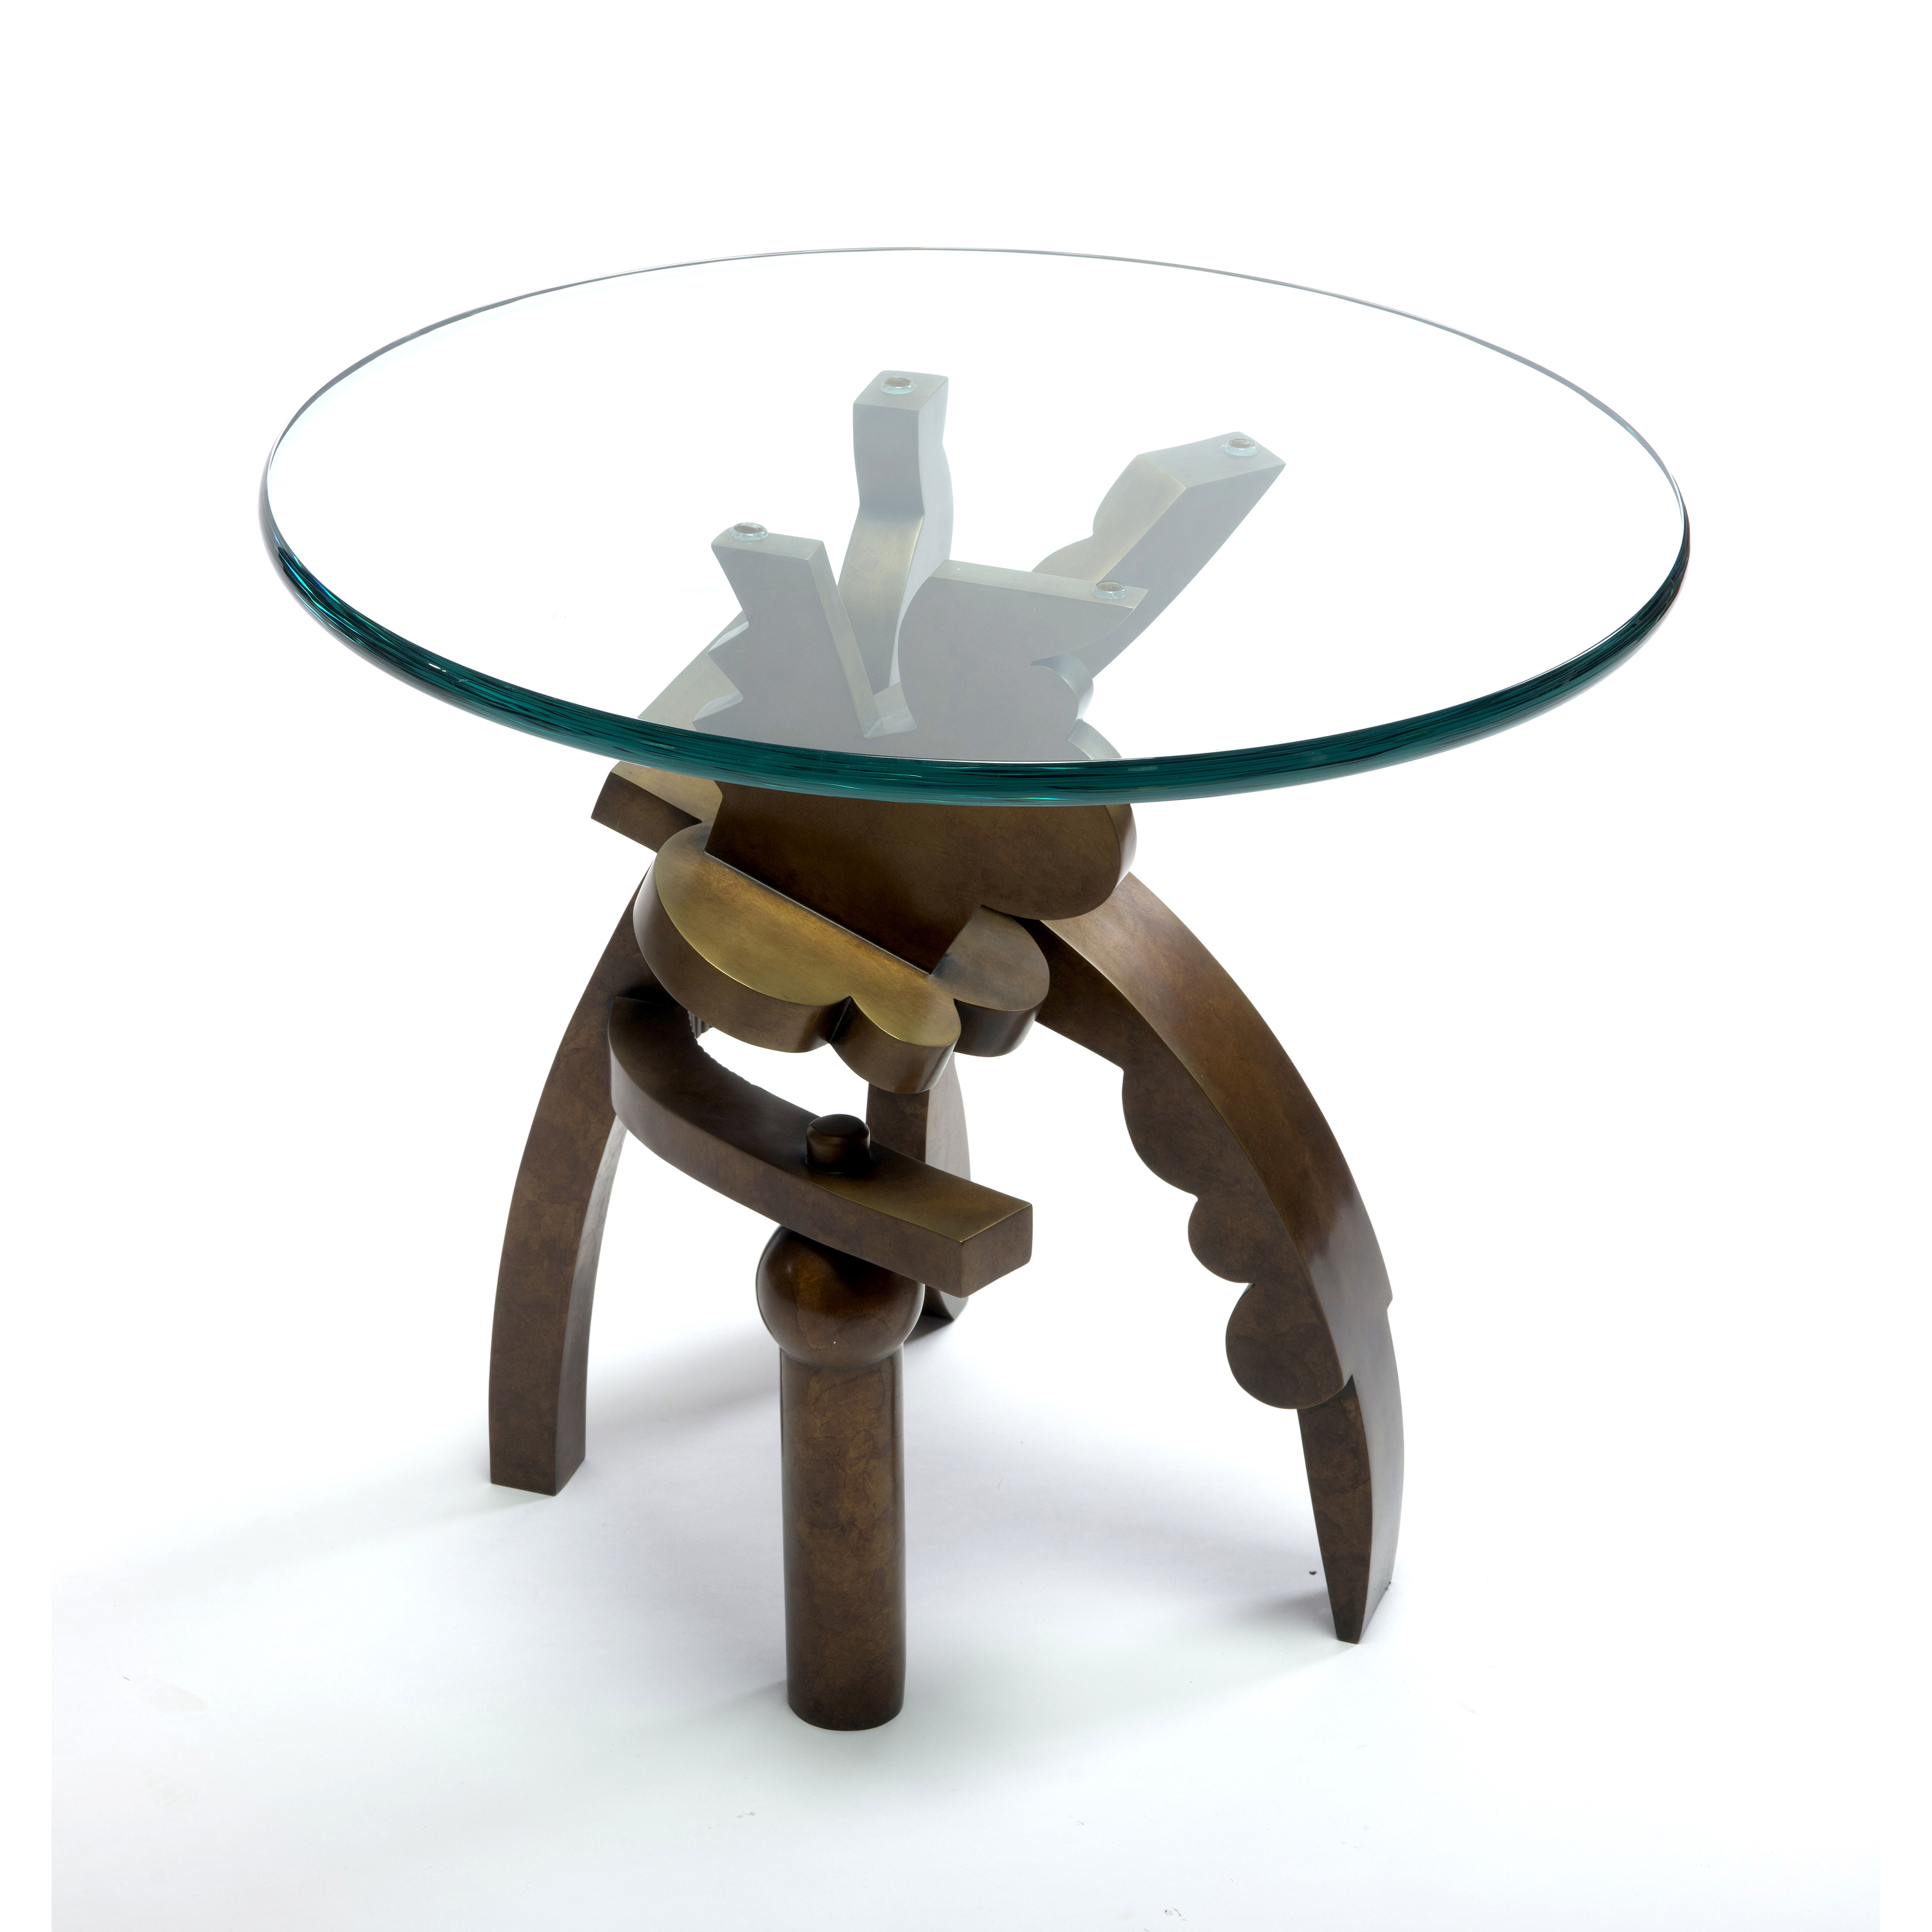 end table covers probably outrageous best idea garry knox bennet wexler gallery web bronze patinaed cast glass piece dining set walnut grain butcher block silver small side